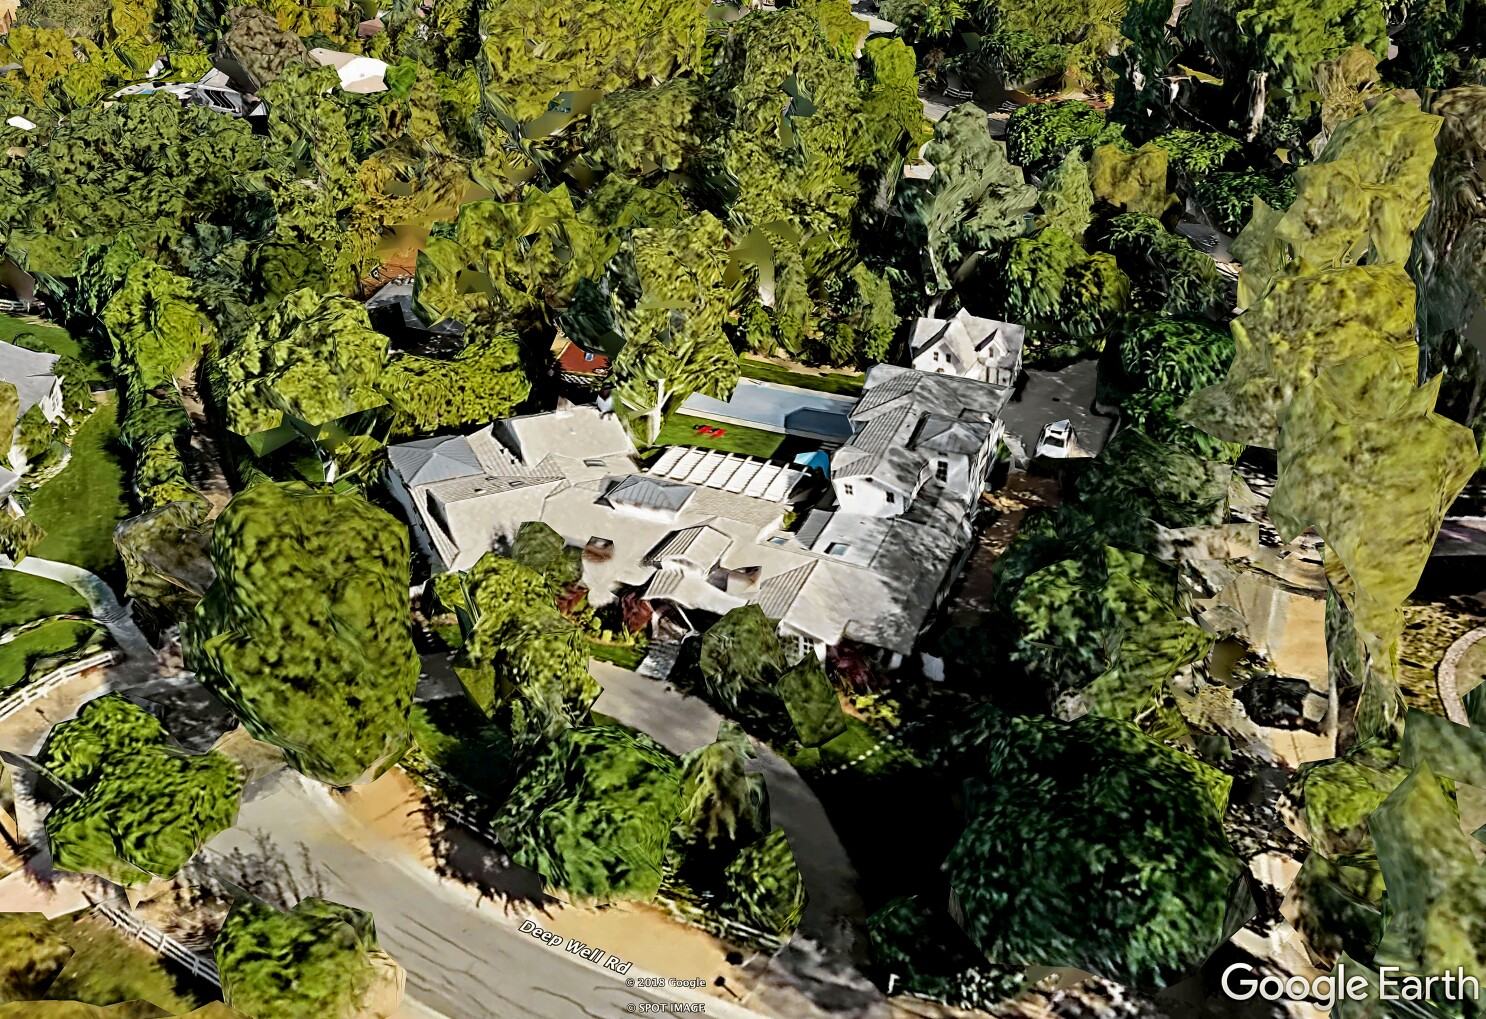 Hot Property: John Stamos joins the growing celebrity crowd in gated Hidden Hills